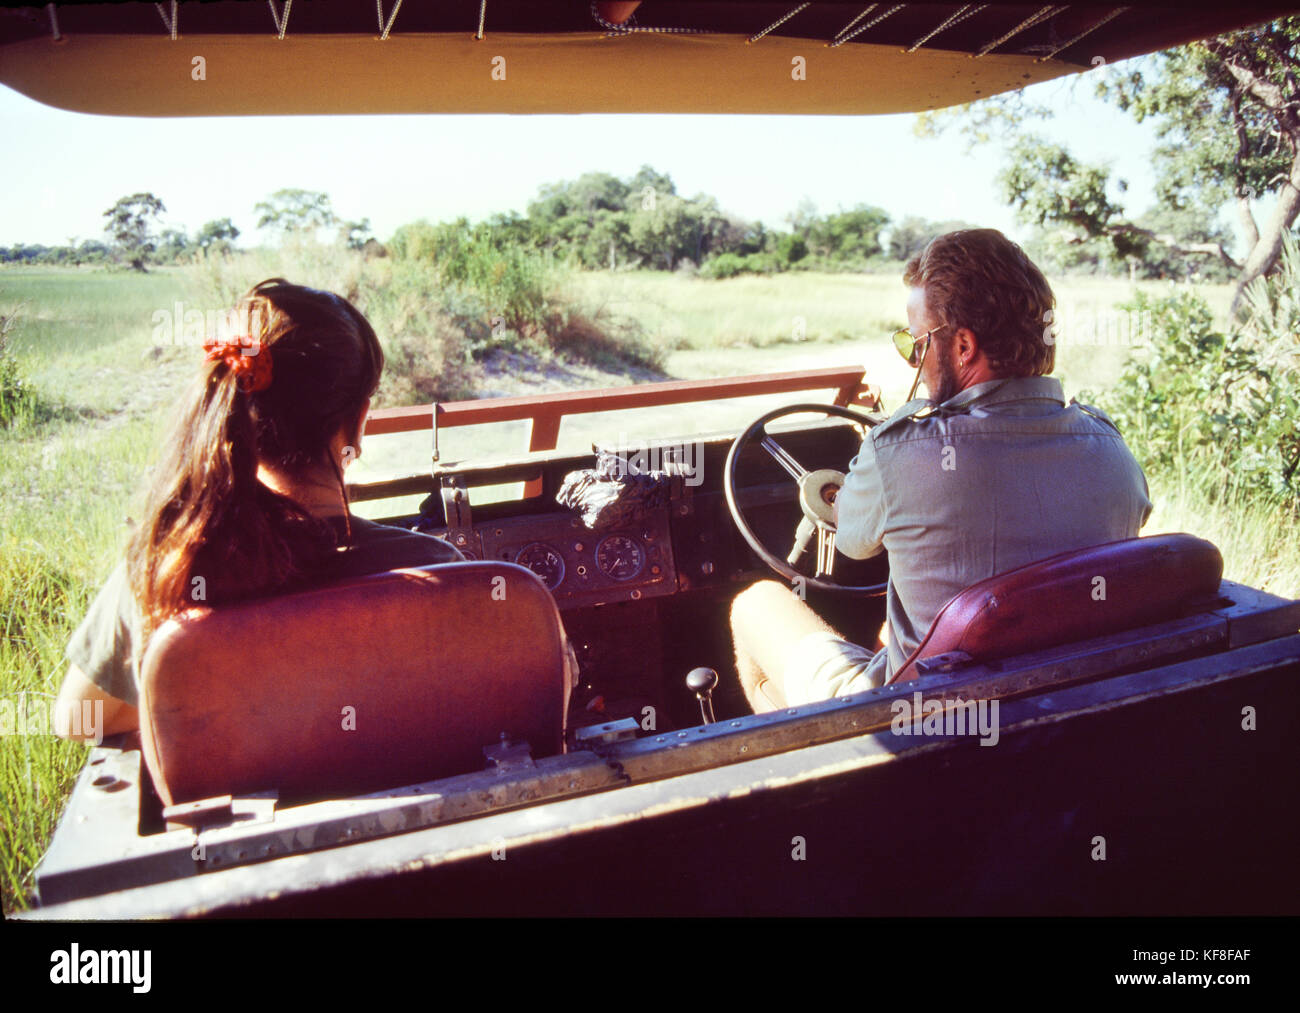 BOTSWANA, Africa, Chobe National Park and Game Reserve, an early morning game drive in the park - Stock Image